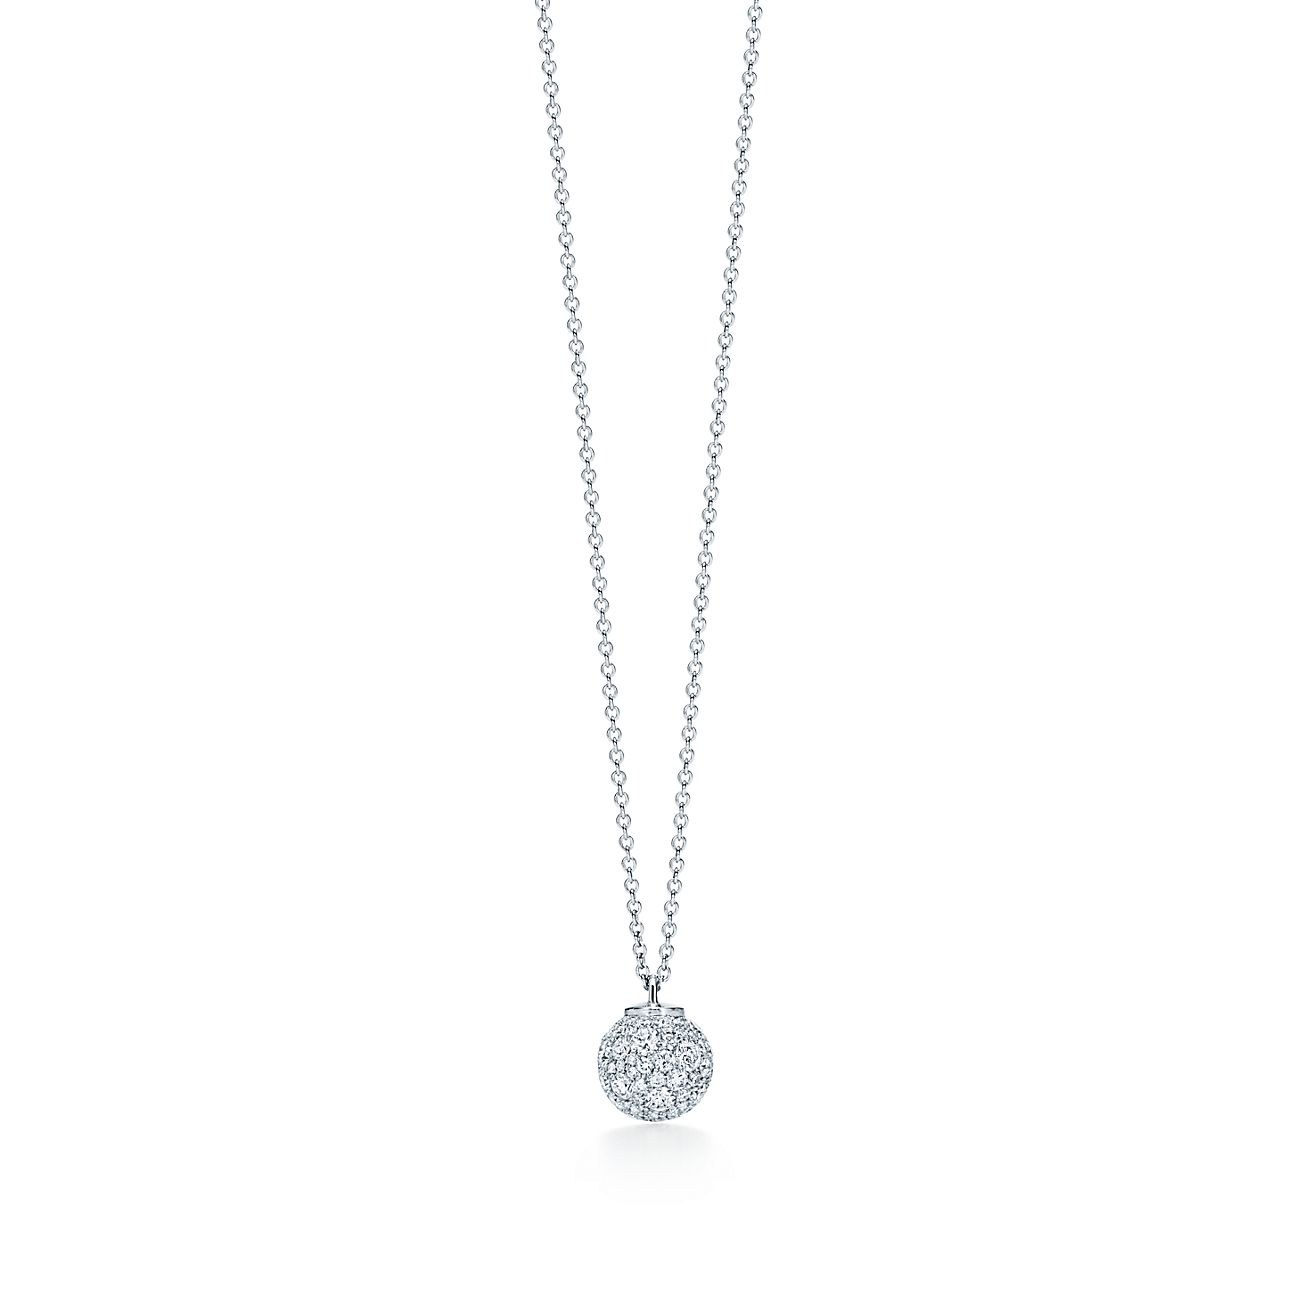 pendant jewellers fope from s white gold daisy jewellery necklace image lovely necklaces berry